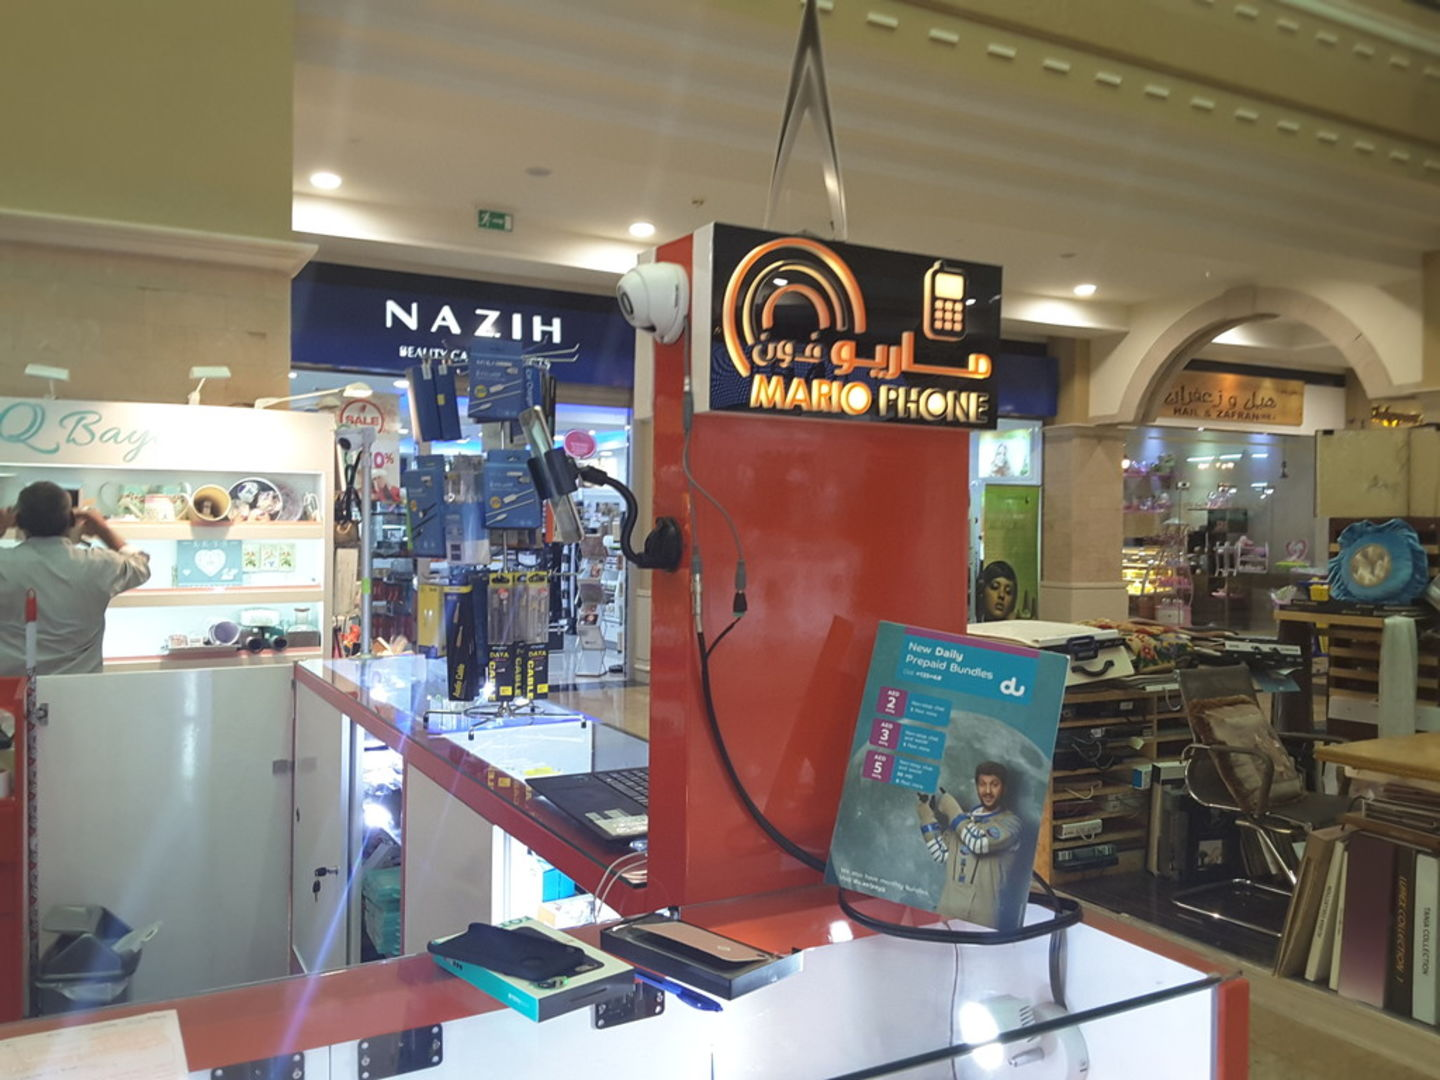 HiDubai-business-mario-phone-shopping-consumer-electronics-muhaisnah-1-dubai-2